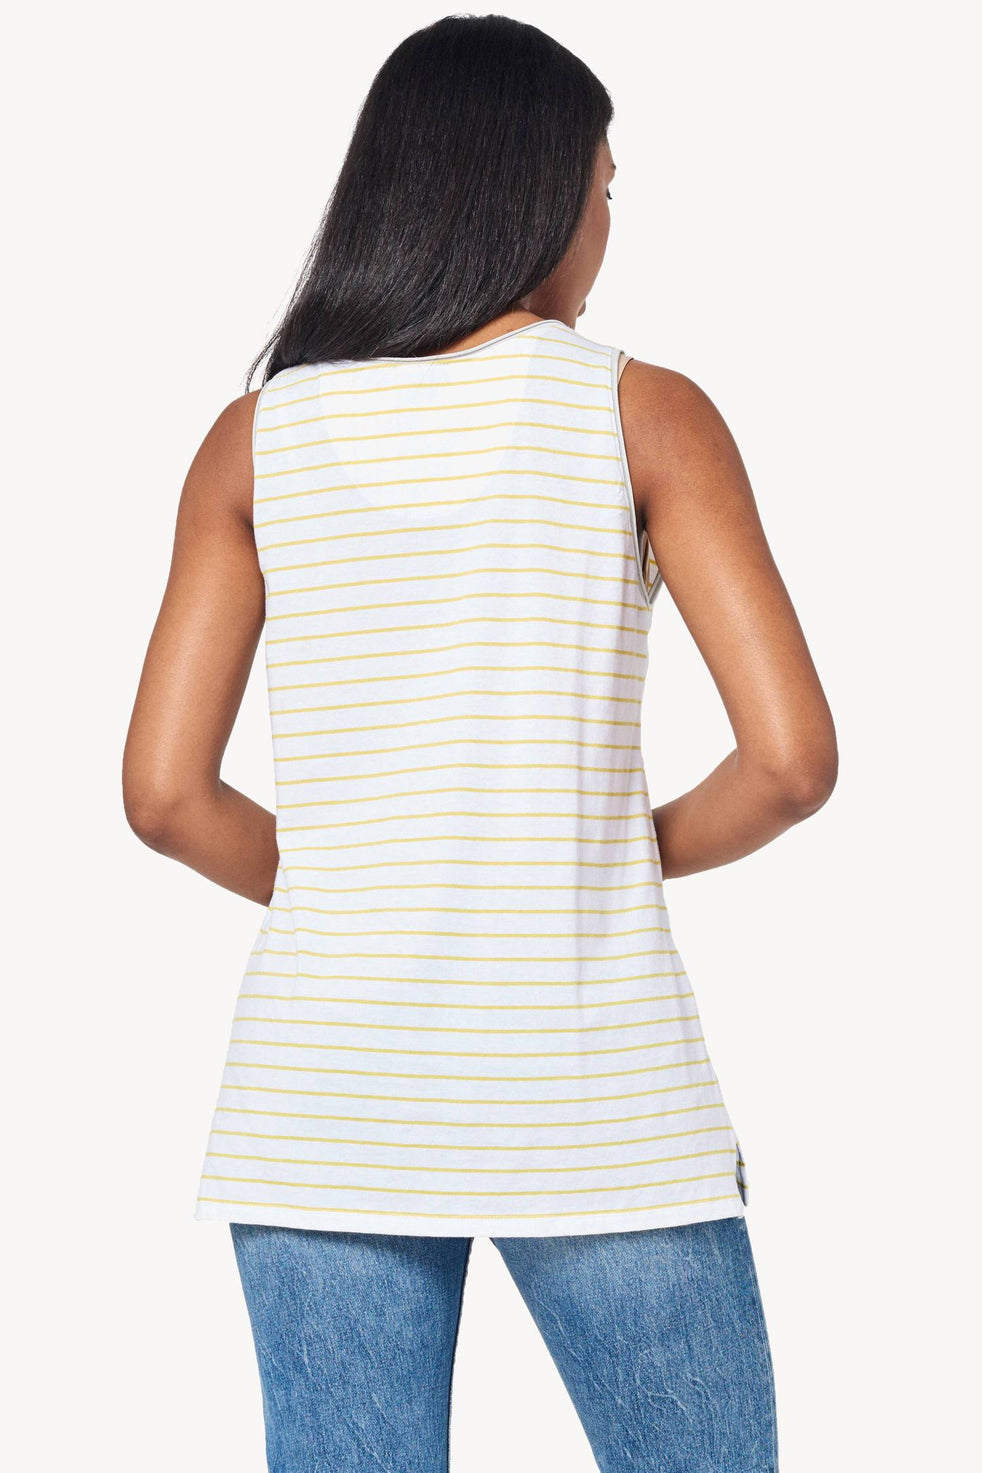 603ce9a5 Women's Tops, Tees & Blouses | 100% Cotton Shirts | Classic T Shirts